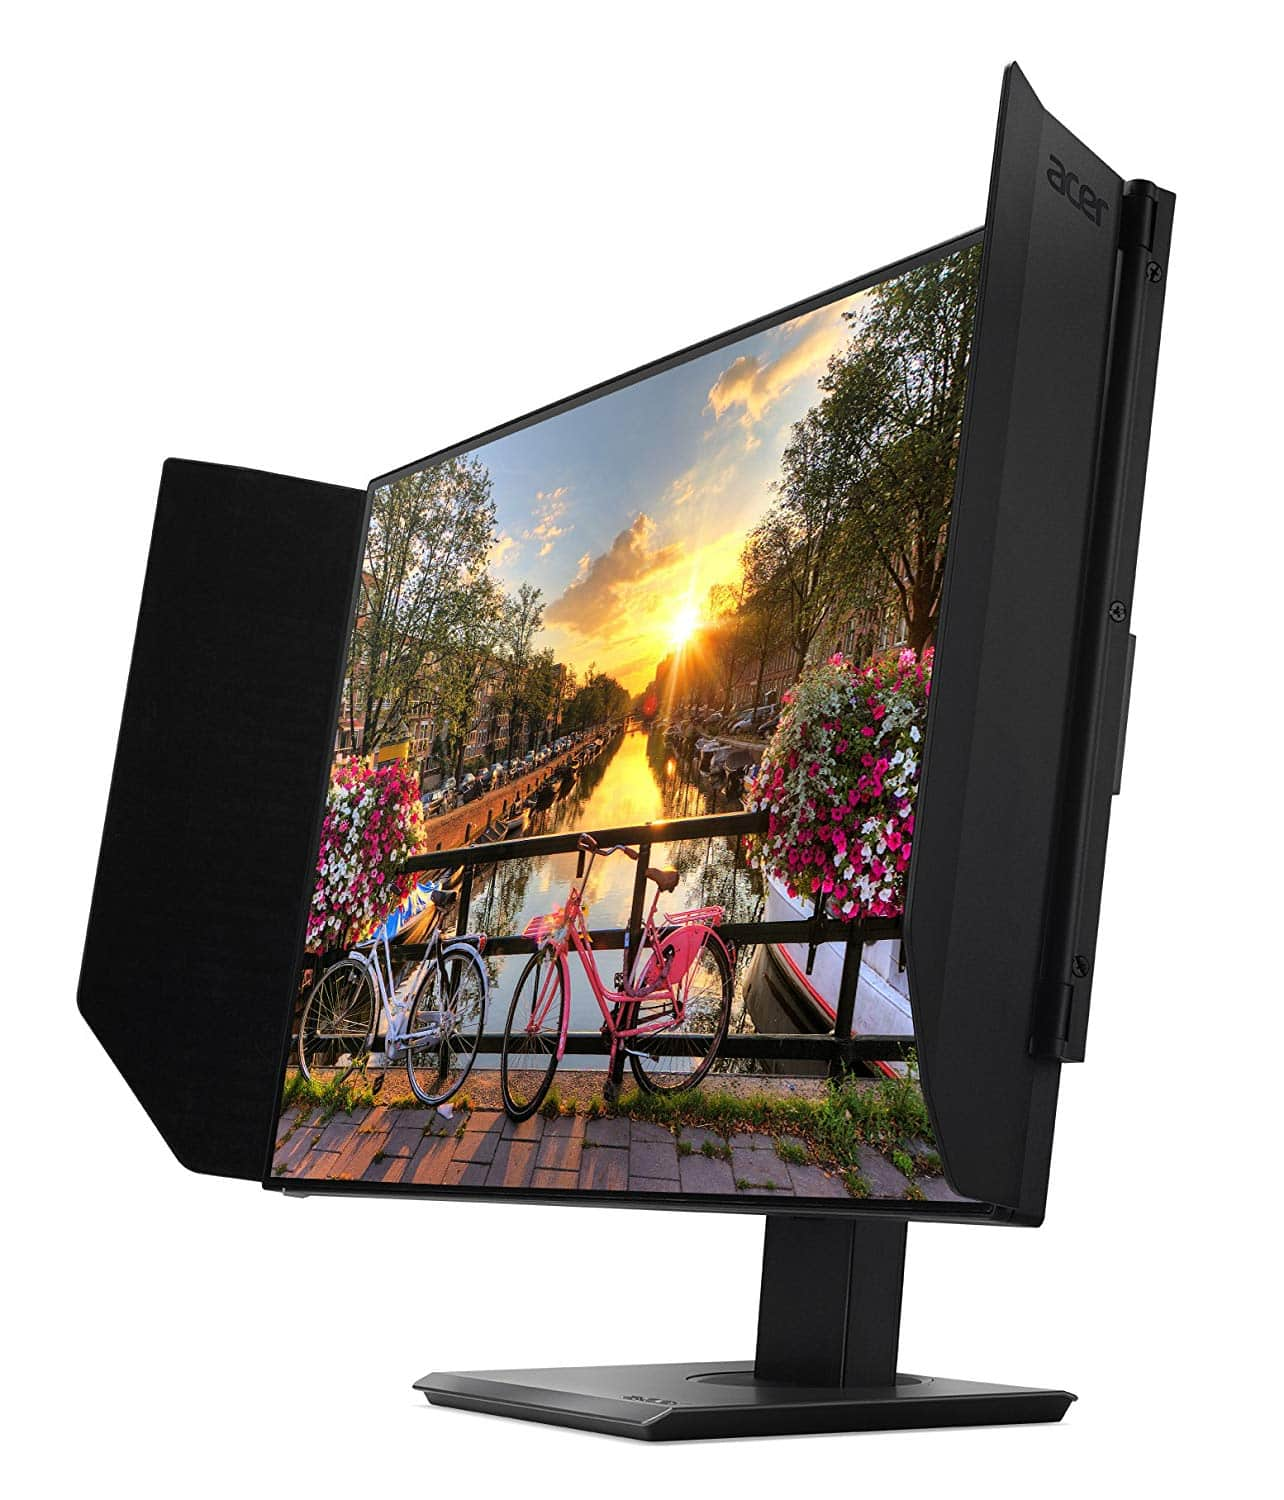 Best Monitors For Photo Editing In 2020 Just Creative